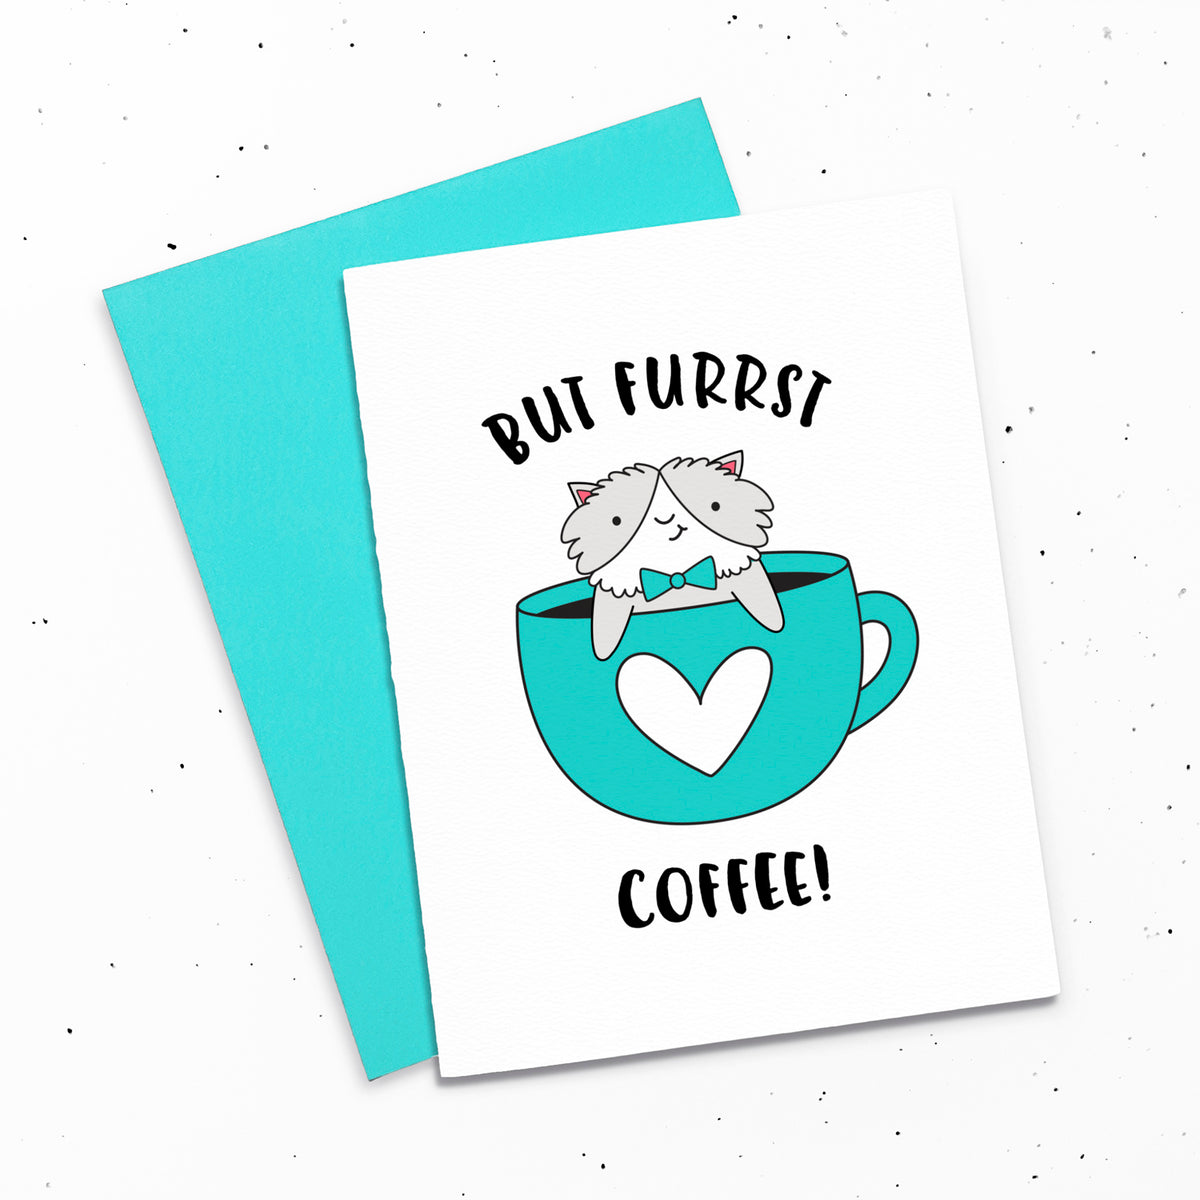 But Furrst Coffee - Greeting card with an illustration of a cat in a coffee mug.